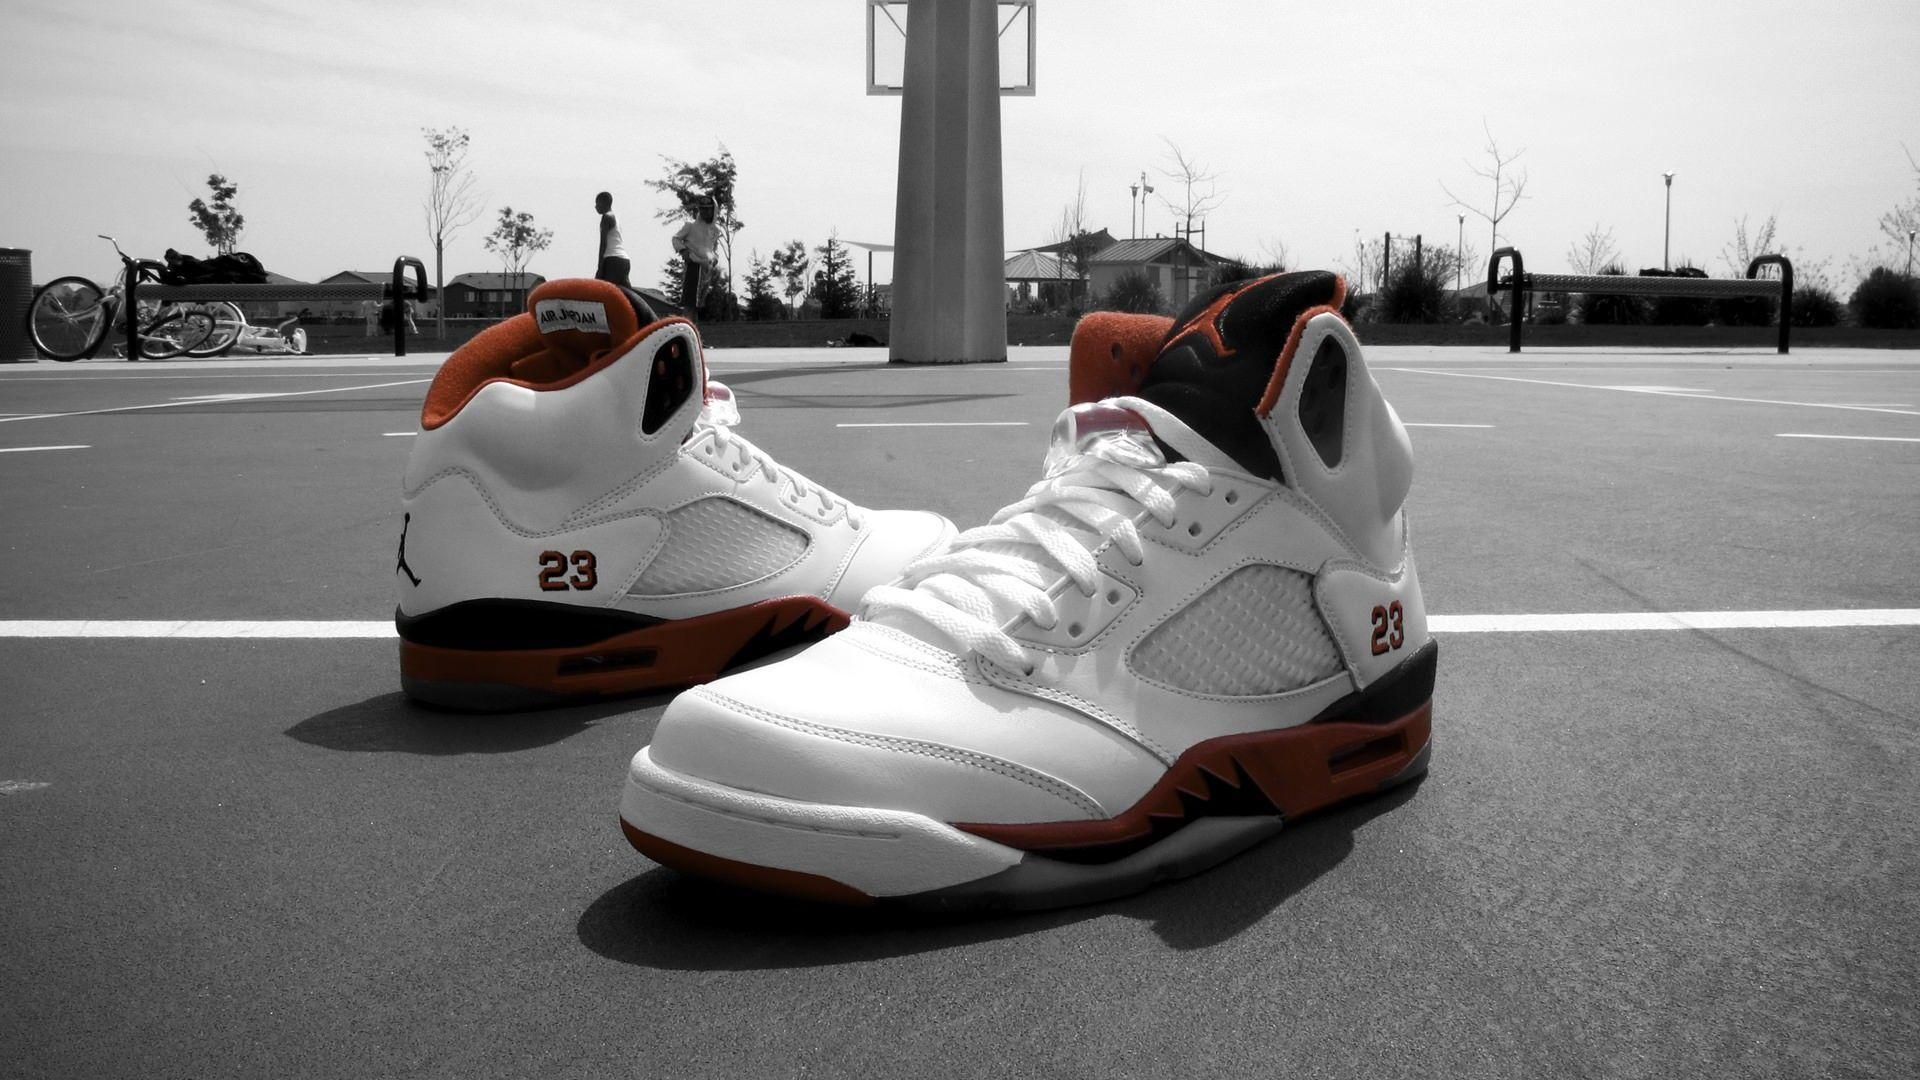 Jordan Shoes Wallpaper Iphone , (53+) image collections of